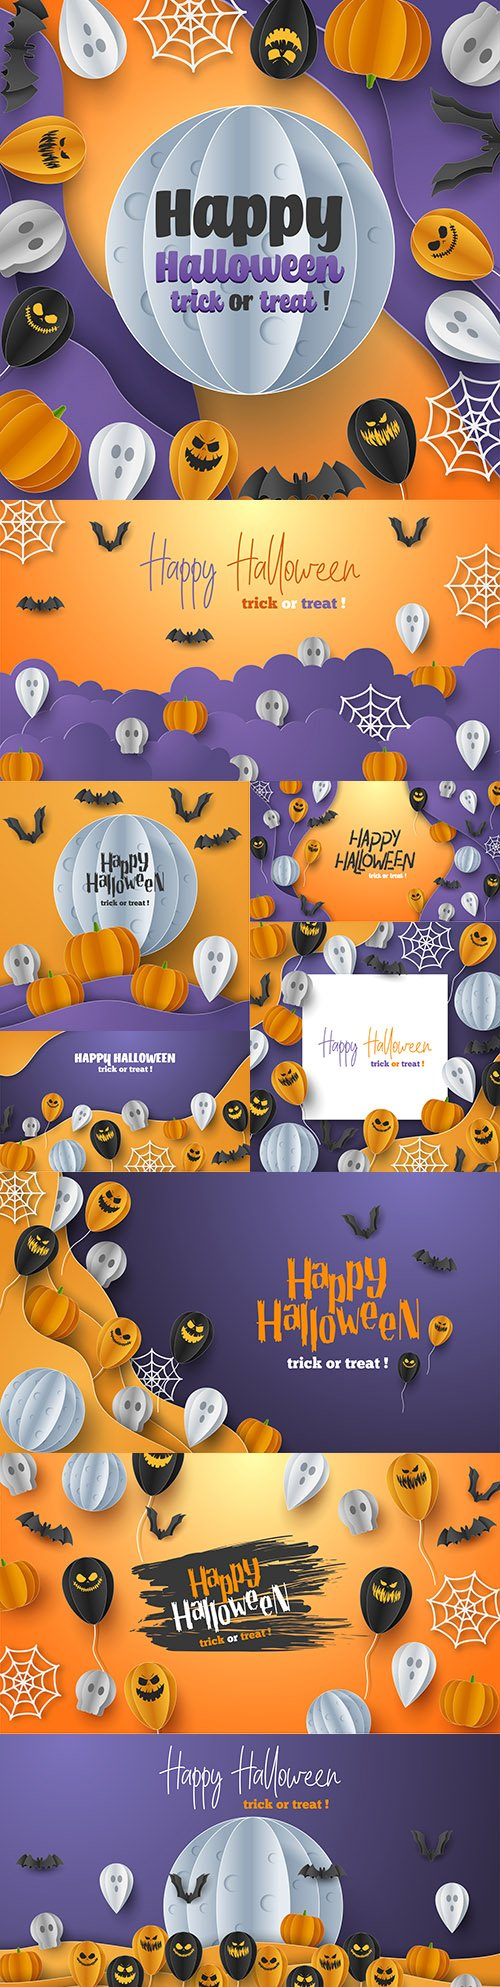 Happy Halloween holiday banner illustration collection